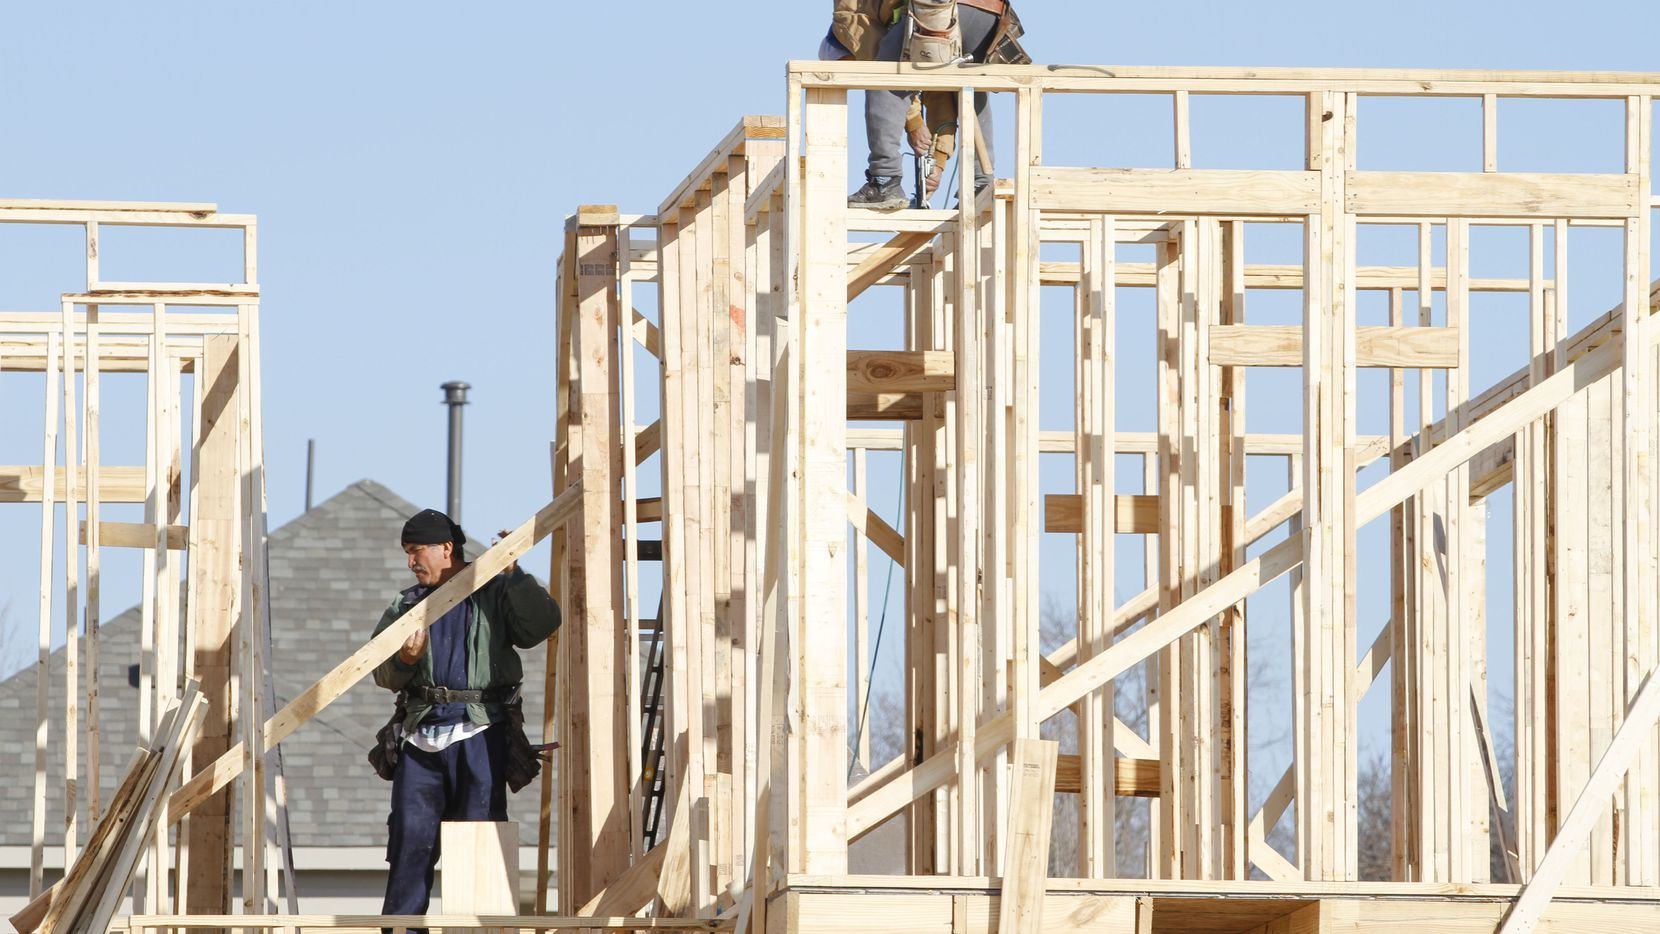 Dallas-Fort Worth leads the country in home building.